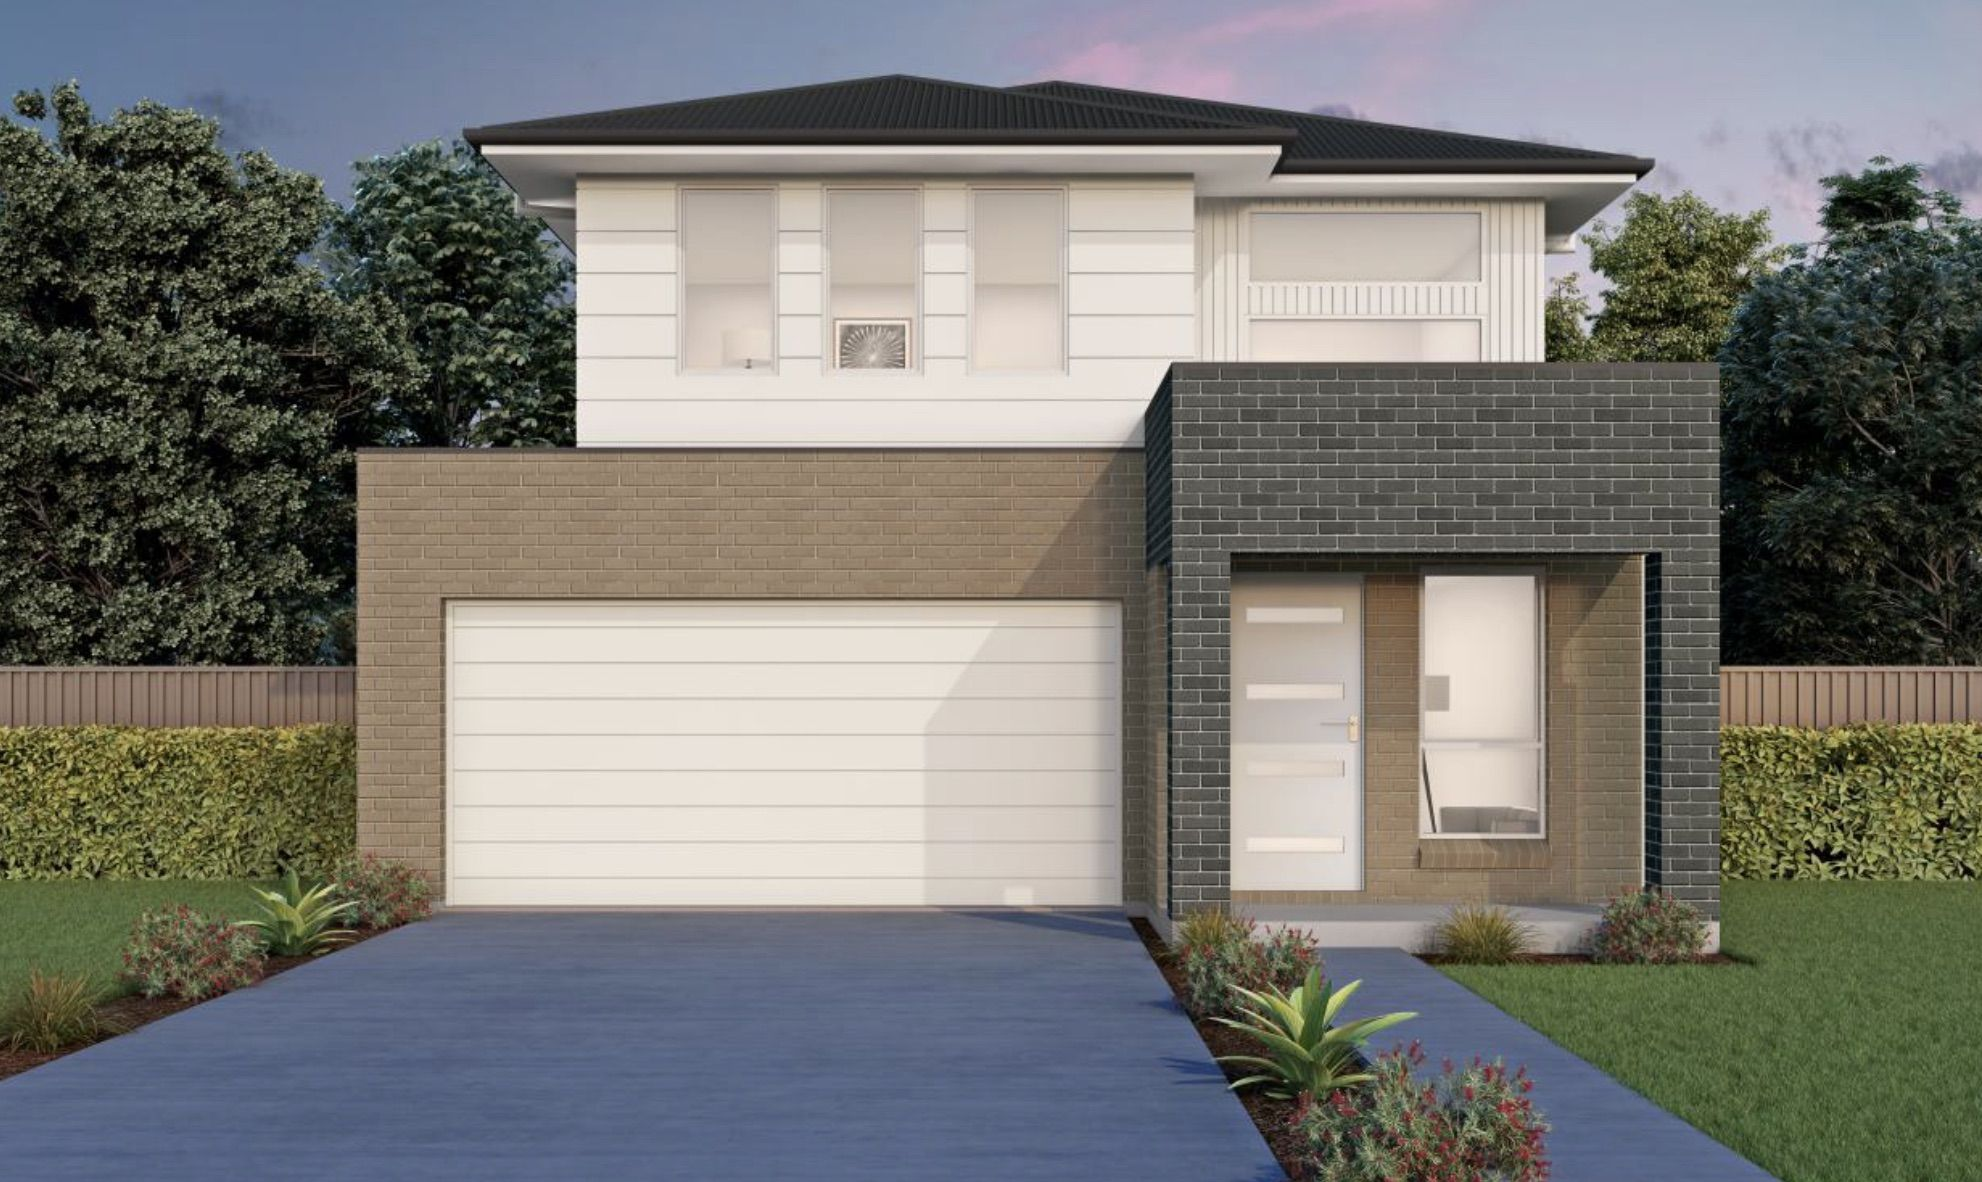 31/3 Nelson Road, Box Hill NSW 2765